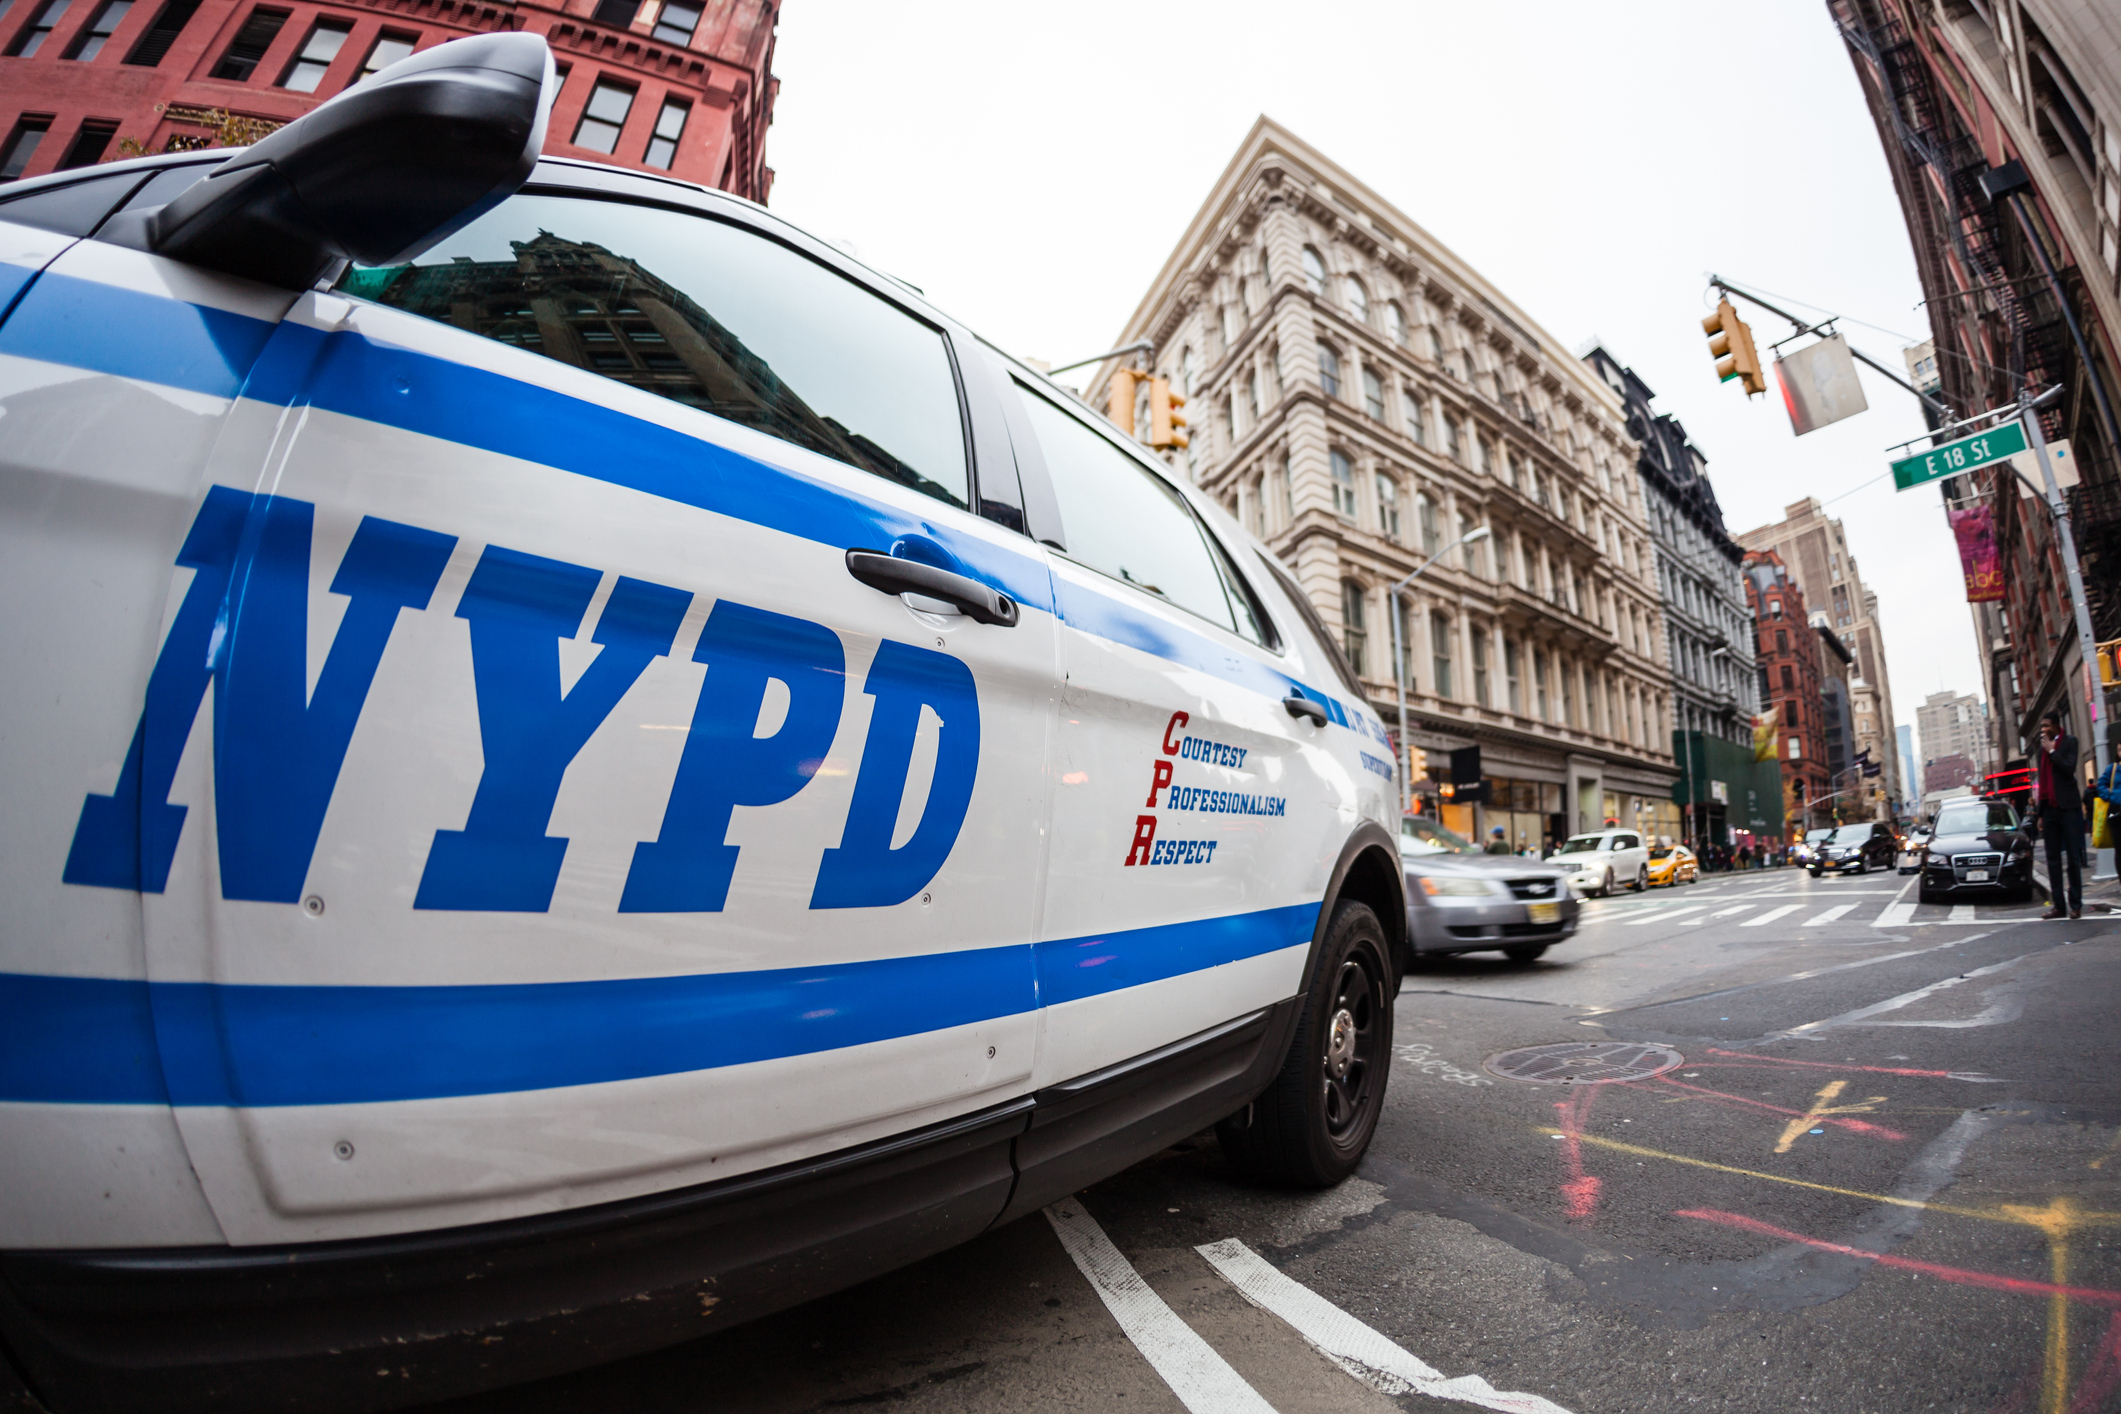 A man has been arrested by the NYPD for three separate hate crimes towards Muslims